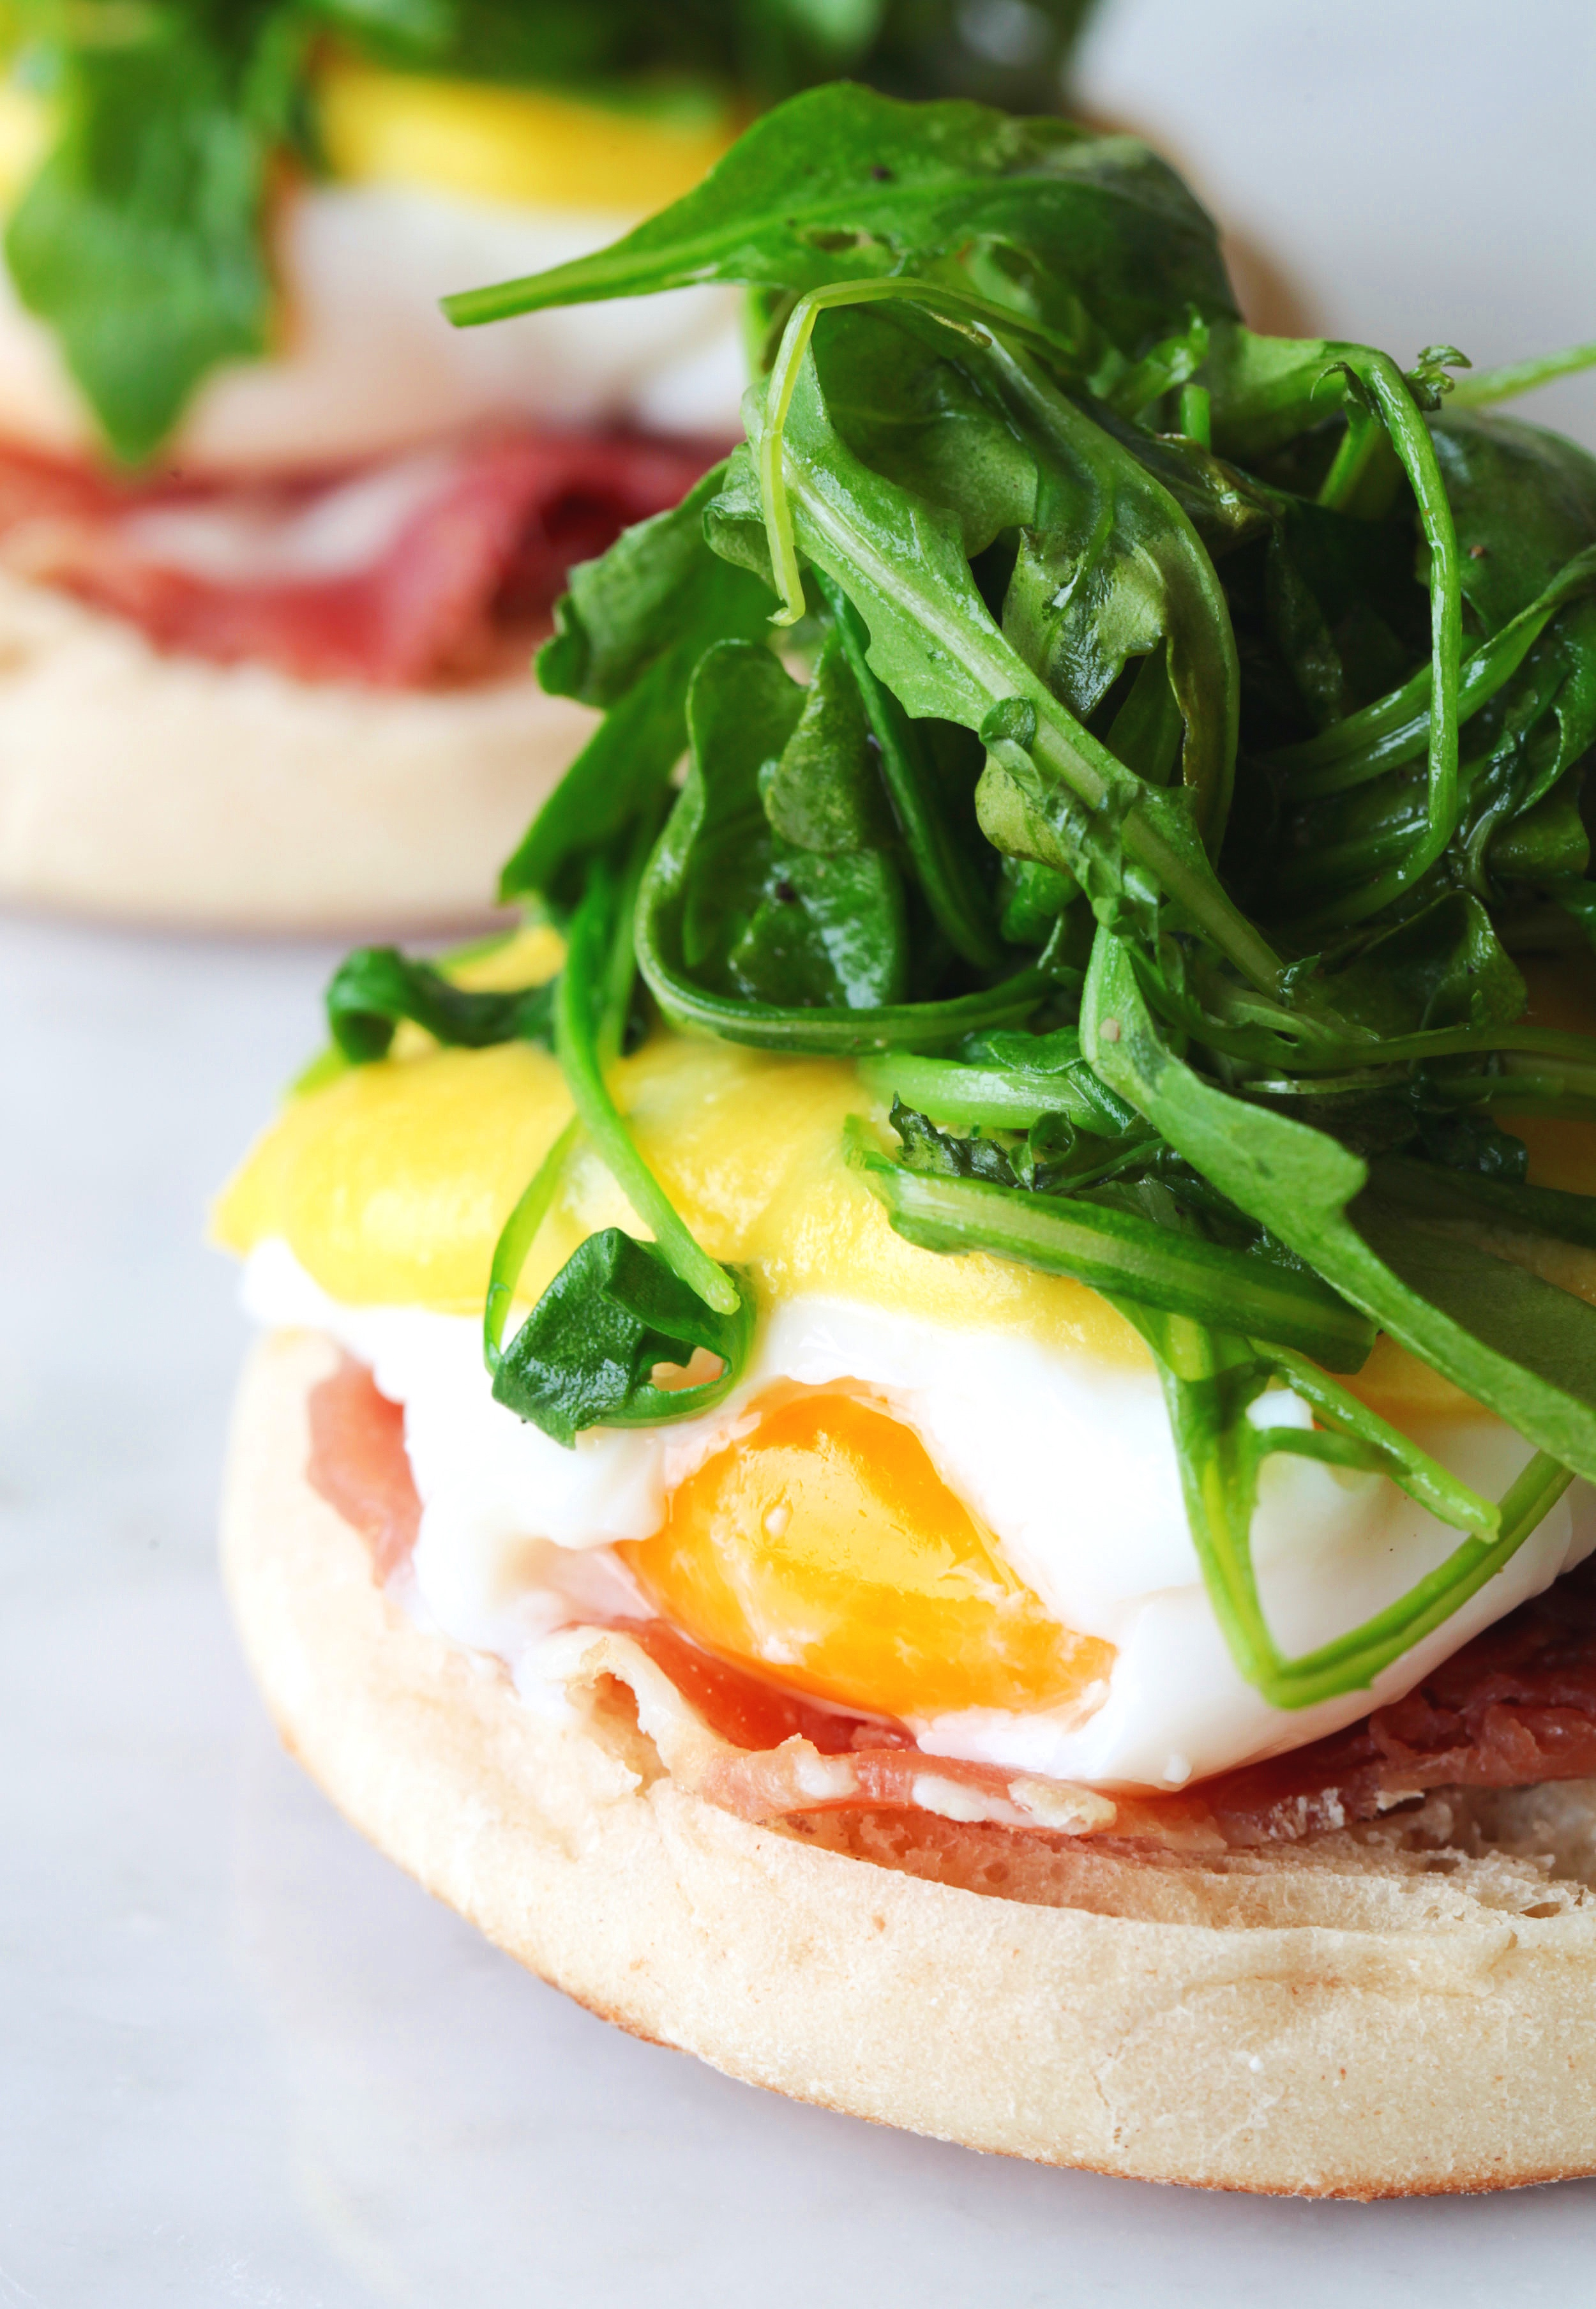 Breakfast sandwich with prosciutto, arugula and sunny side up egg on English muffin